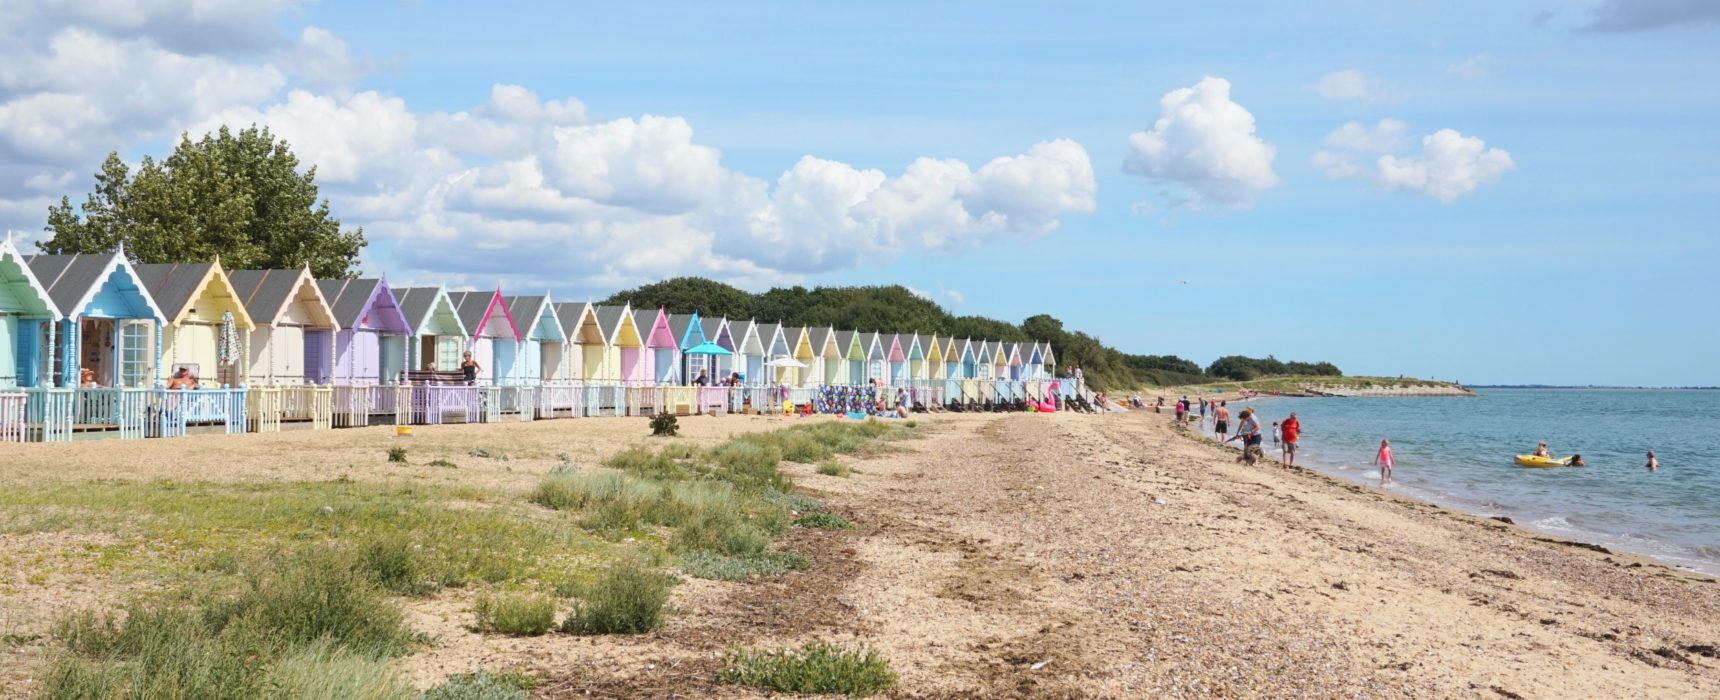 A day trip to Mersea Island